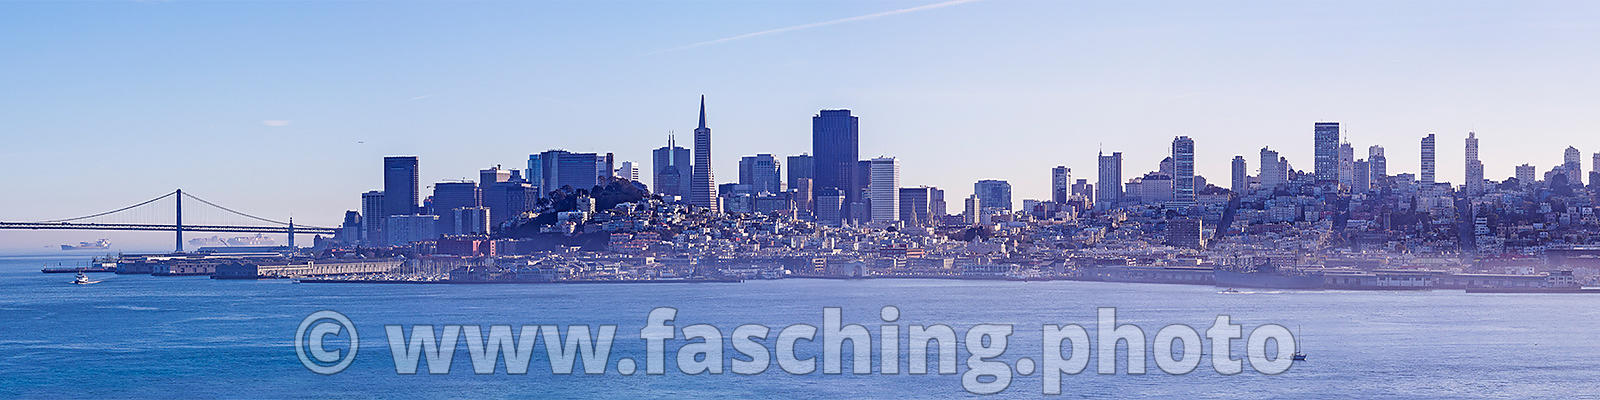 San Francisco Skyline mit Golden Gate Bridge